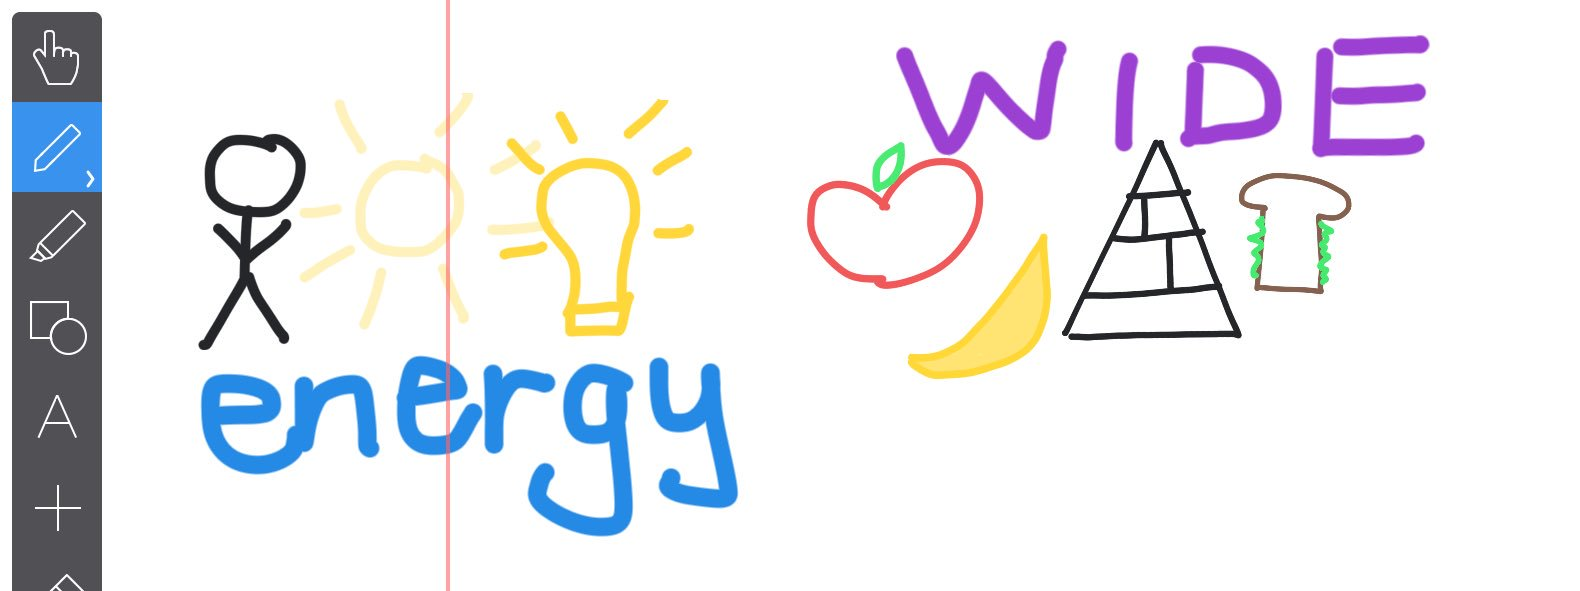 Created my 1st digital sketchnote w/ the help of @MrsBloom06. I always use paper 🗒 & pencil ✏️ but I tried something new. #dg58learns https://t.co/bDekP5Muur